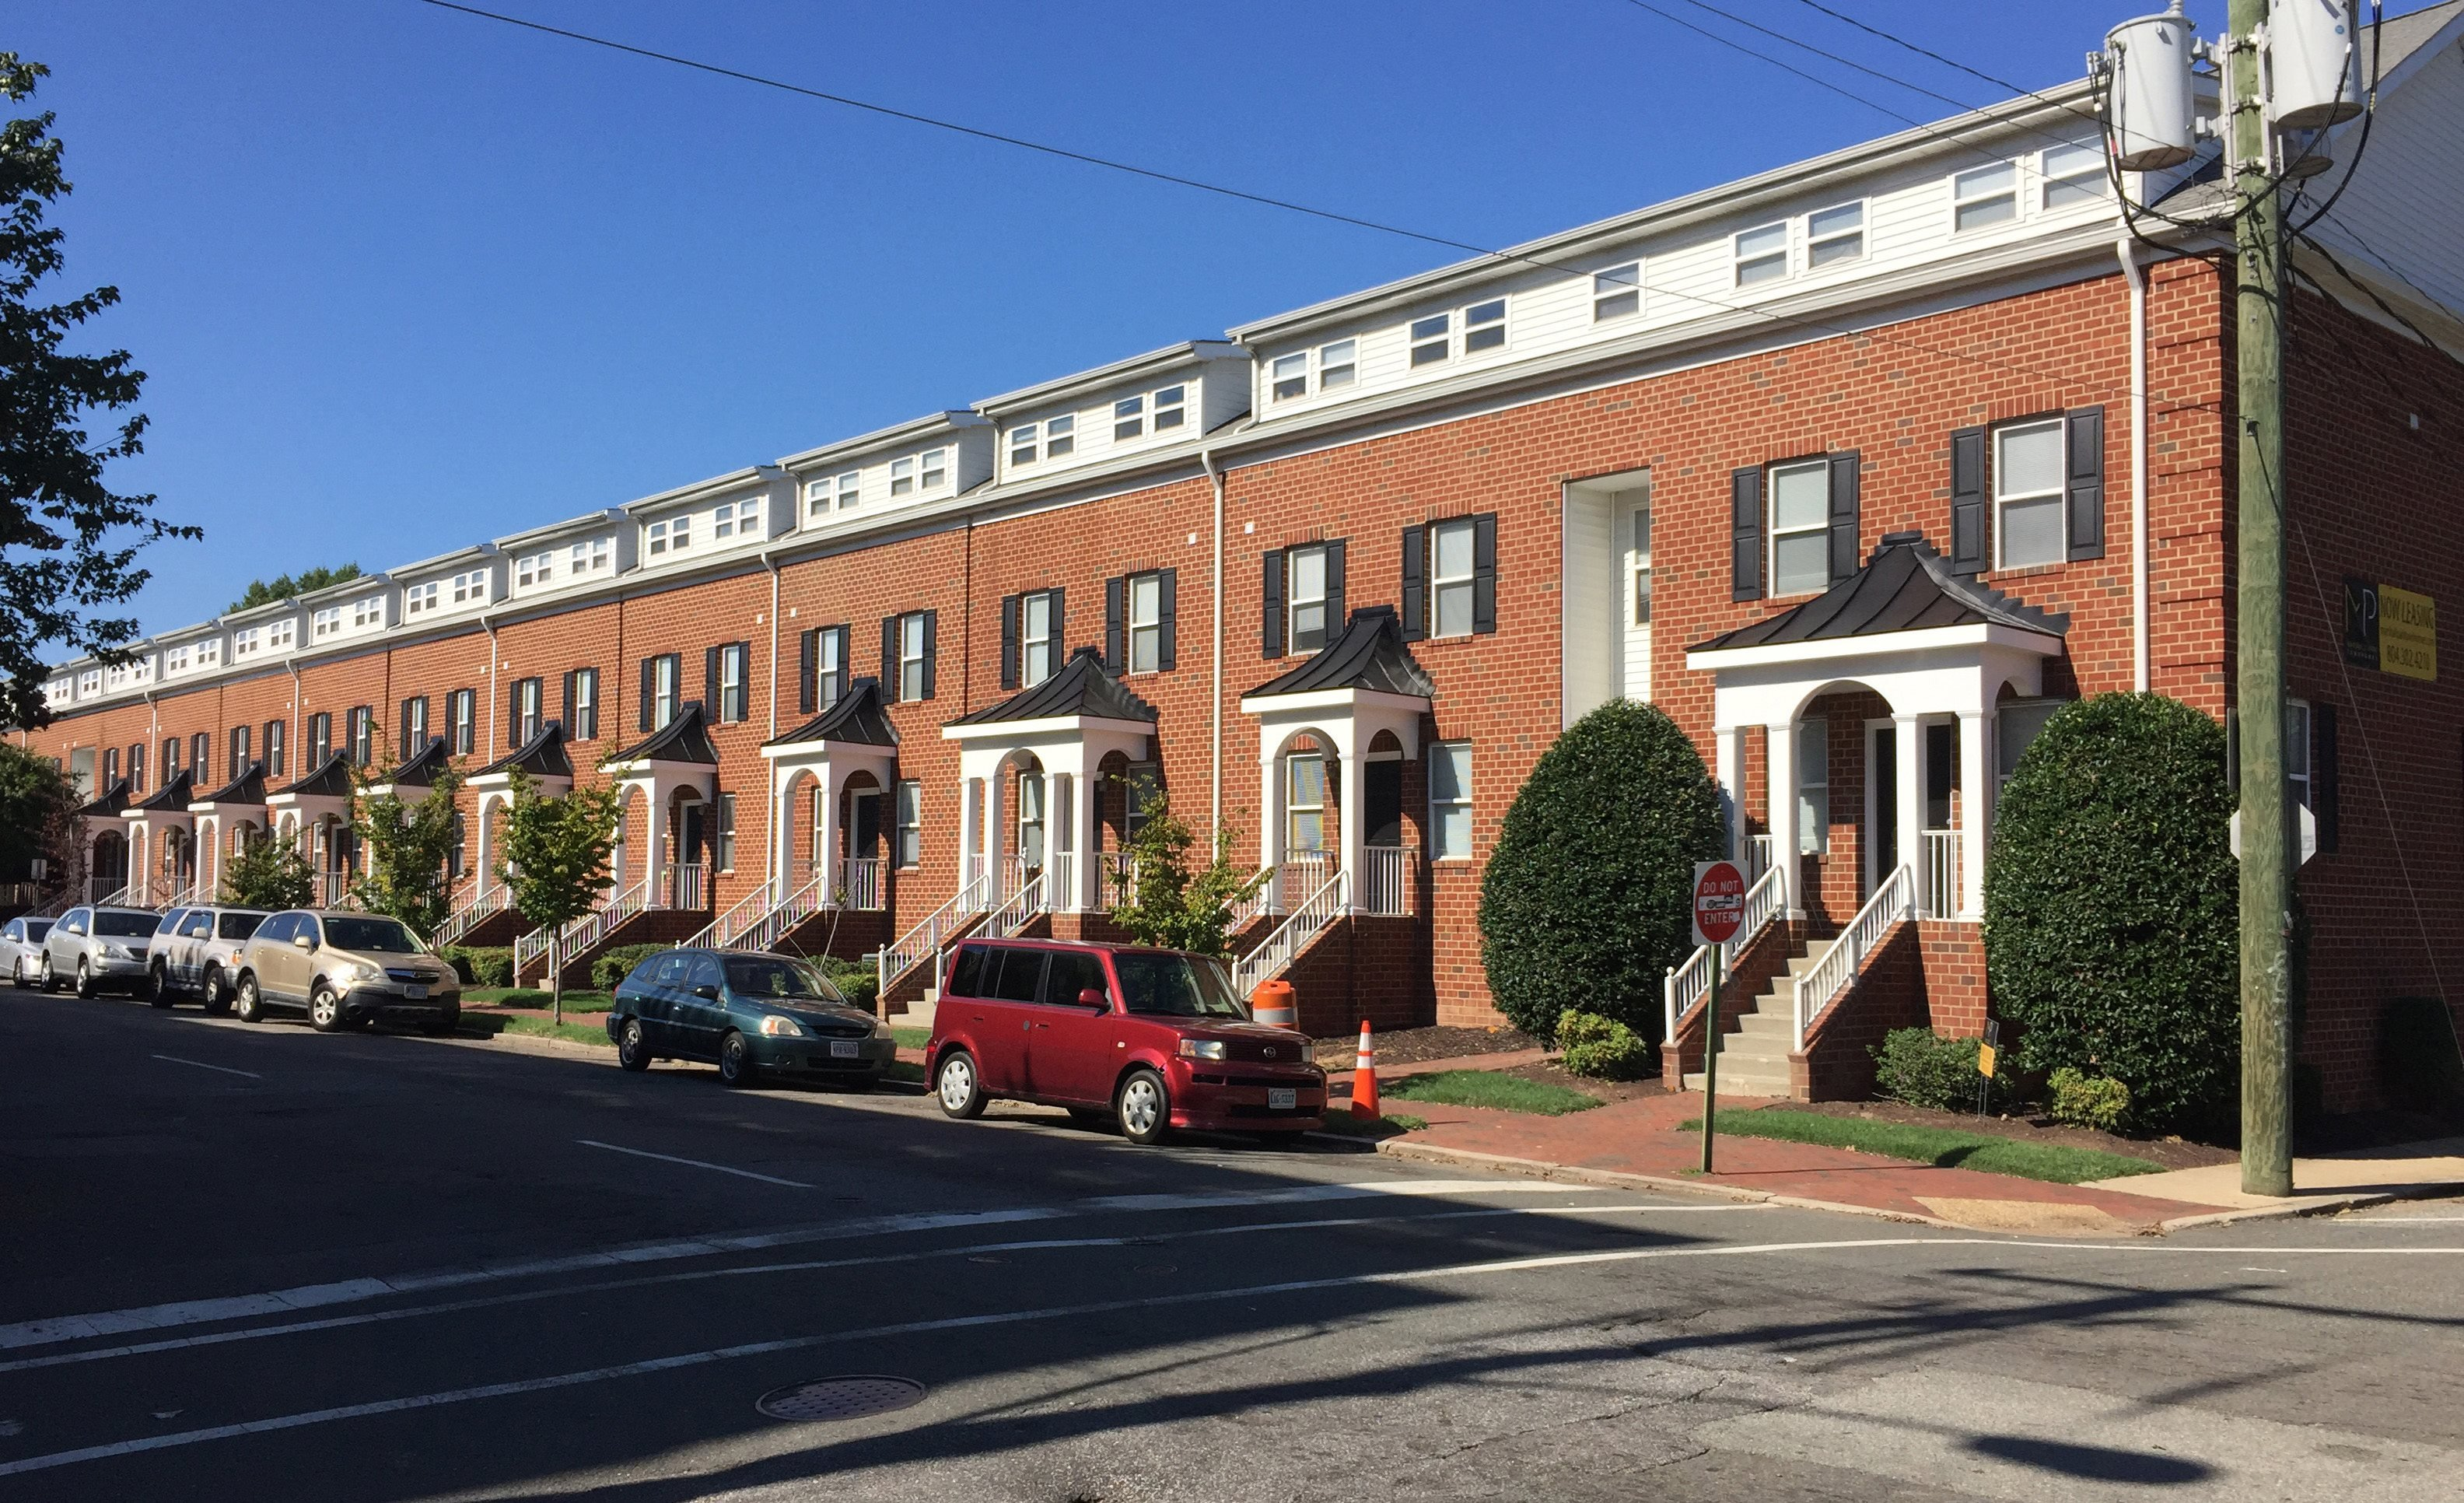 Exterior street view of Marshall Park Townhomes in Richmond VA and VCU Campus